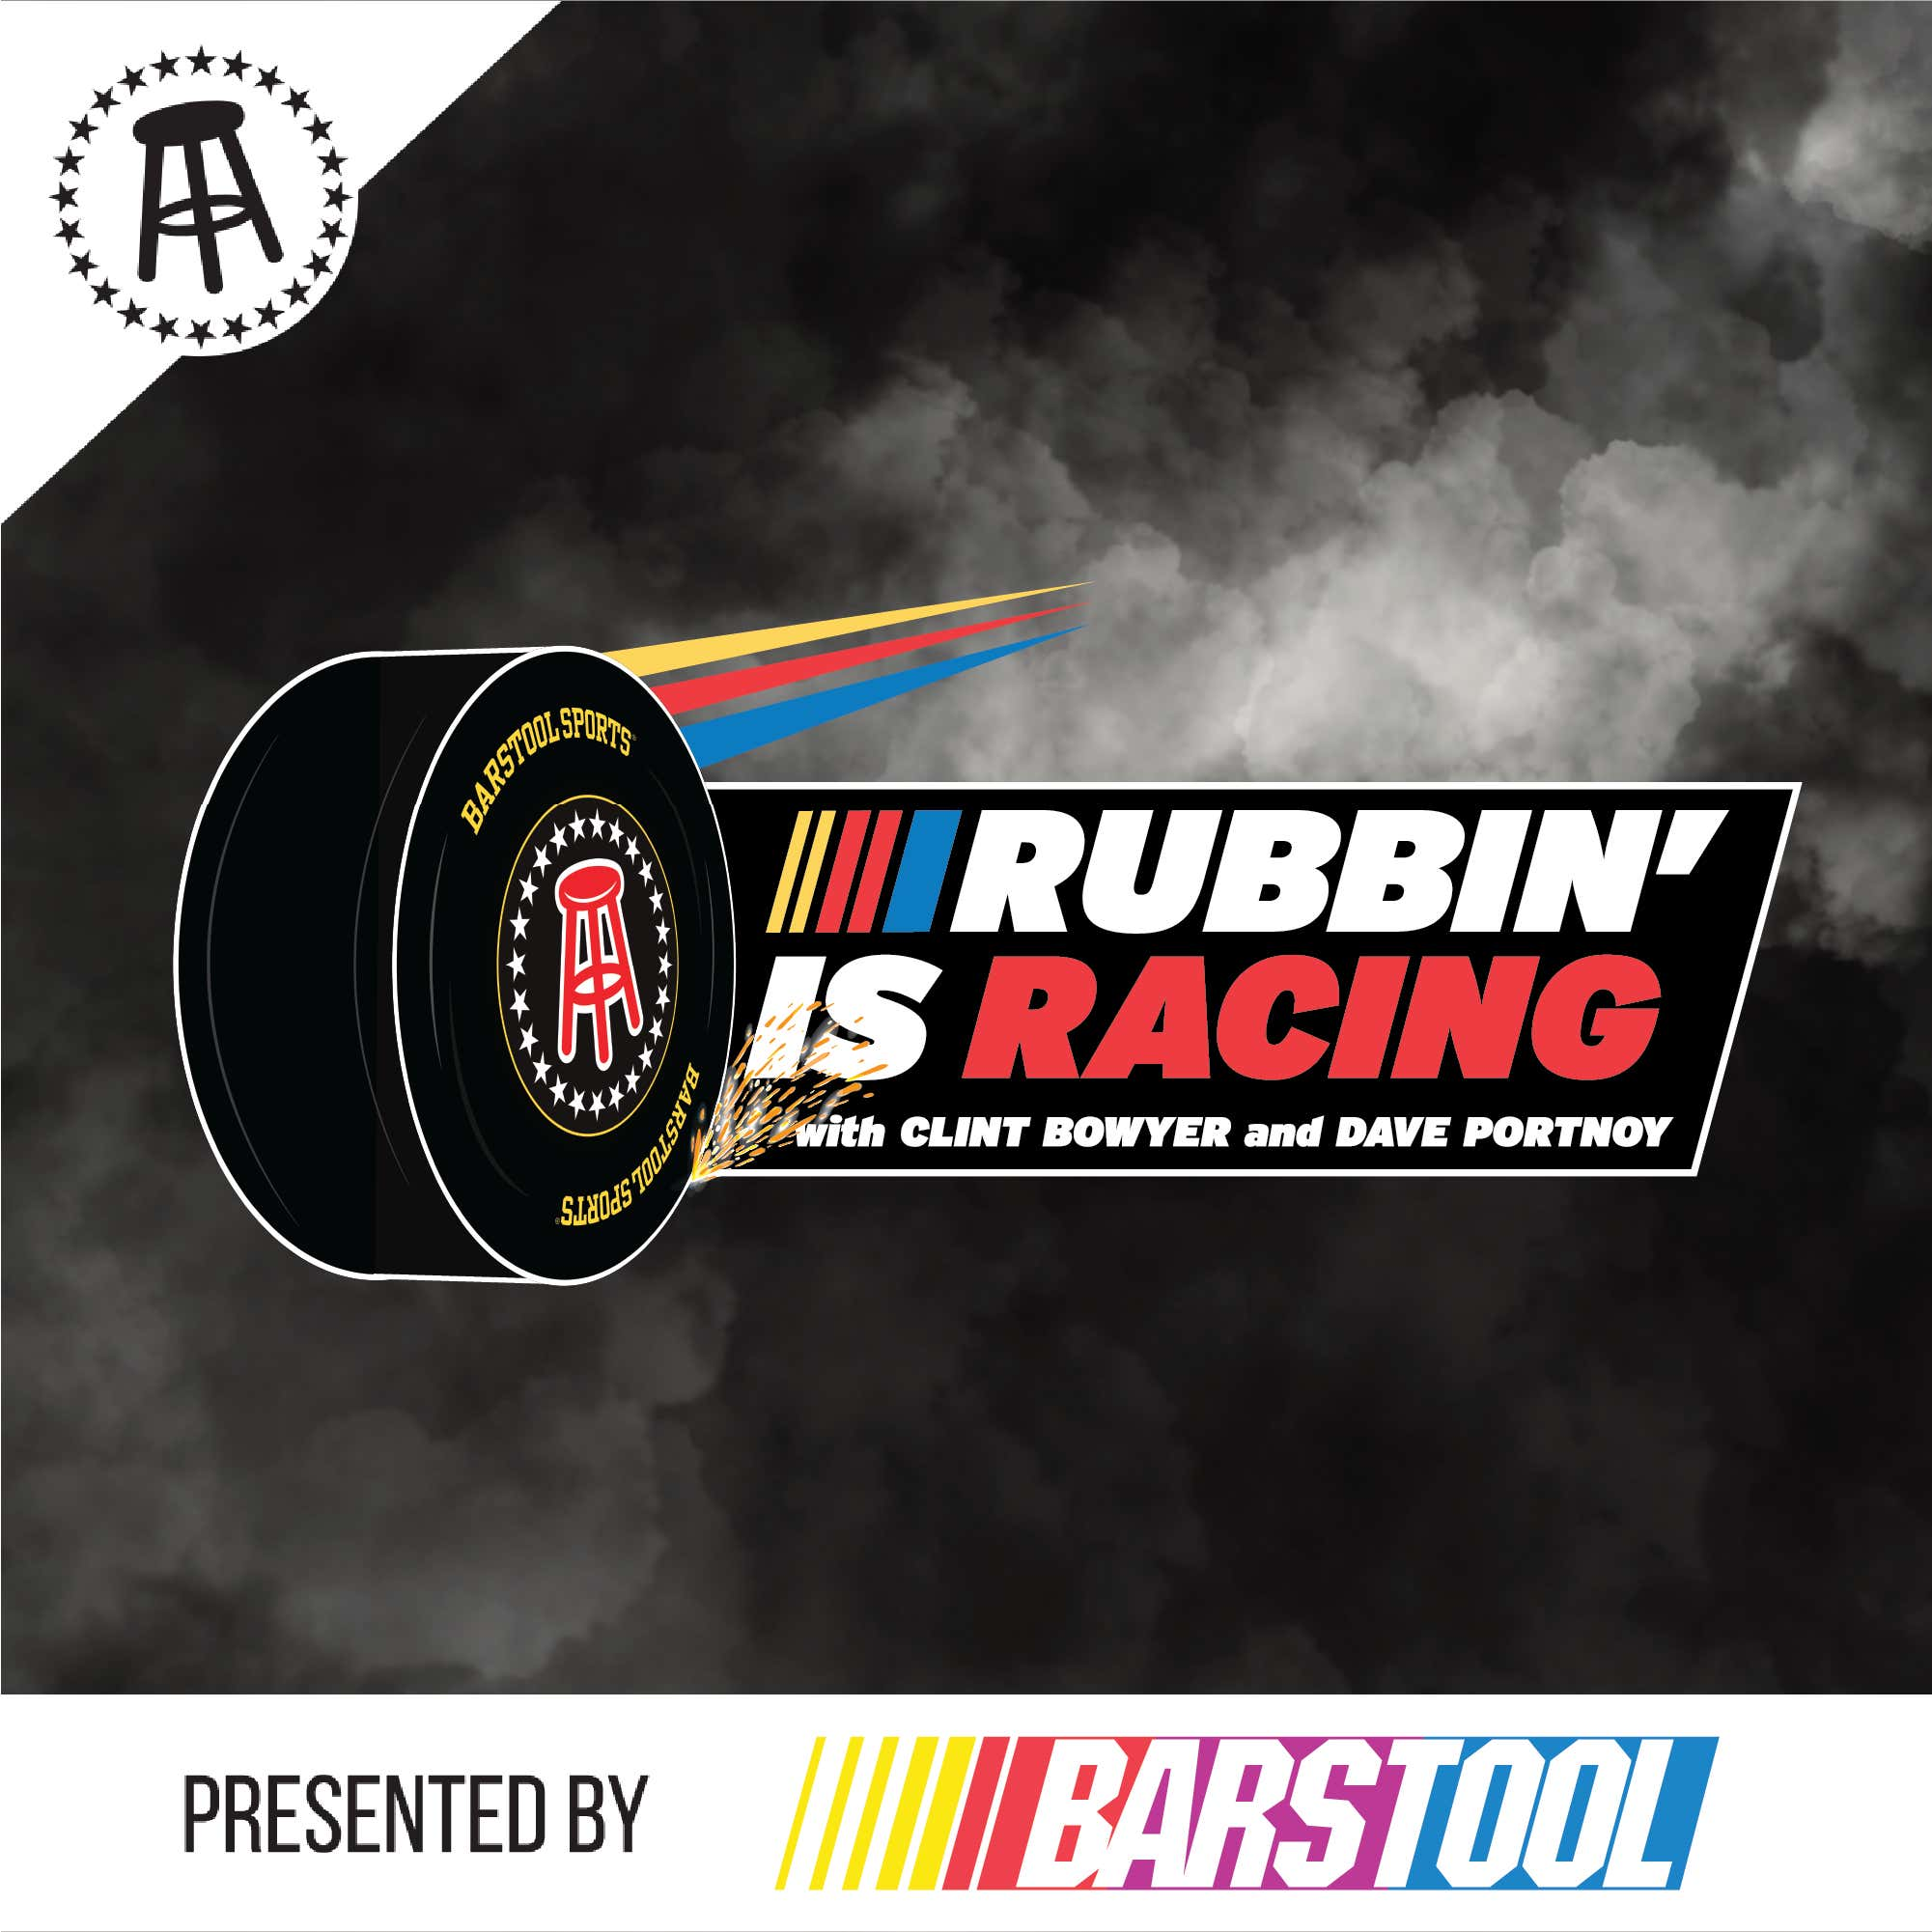 Episode #2 - Barstool Sports and NASCAR (ft. Kyle Busch)